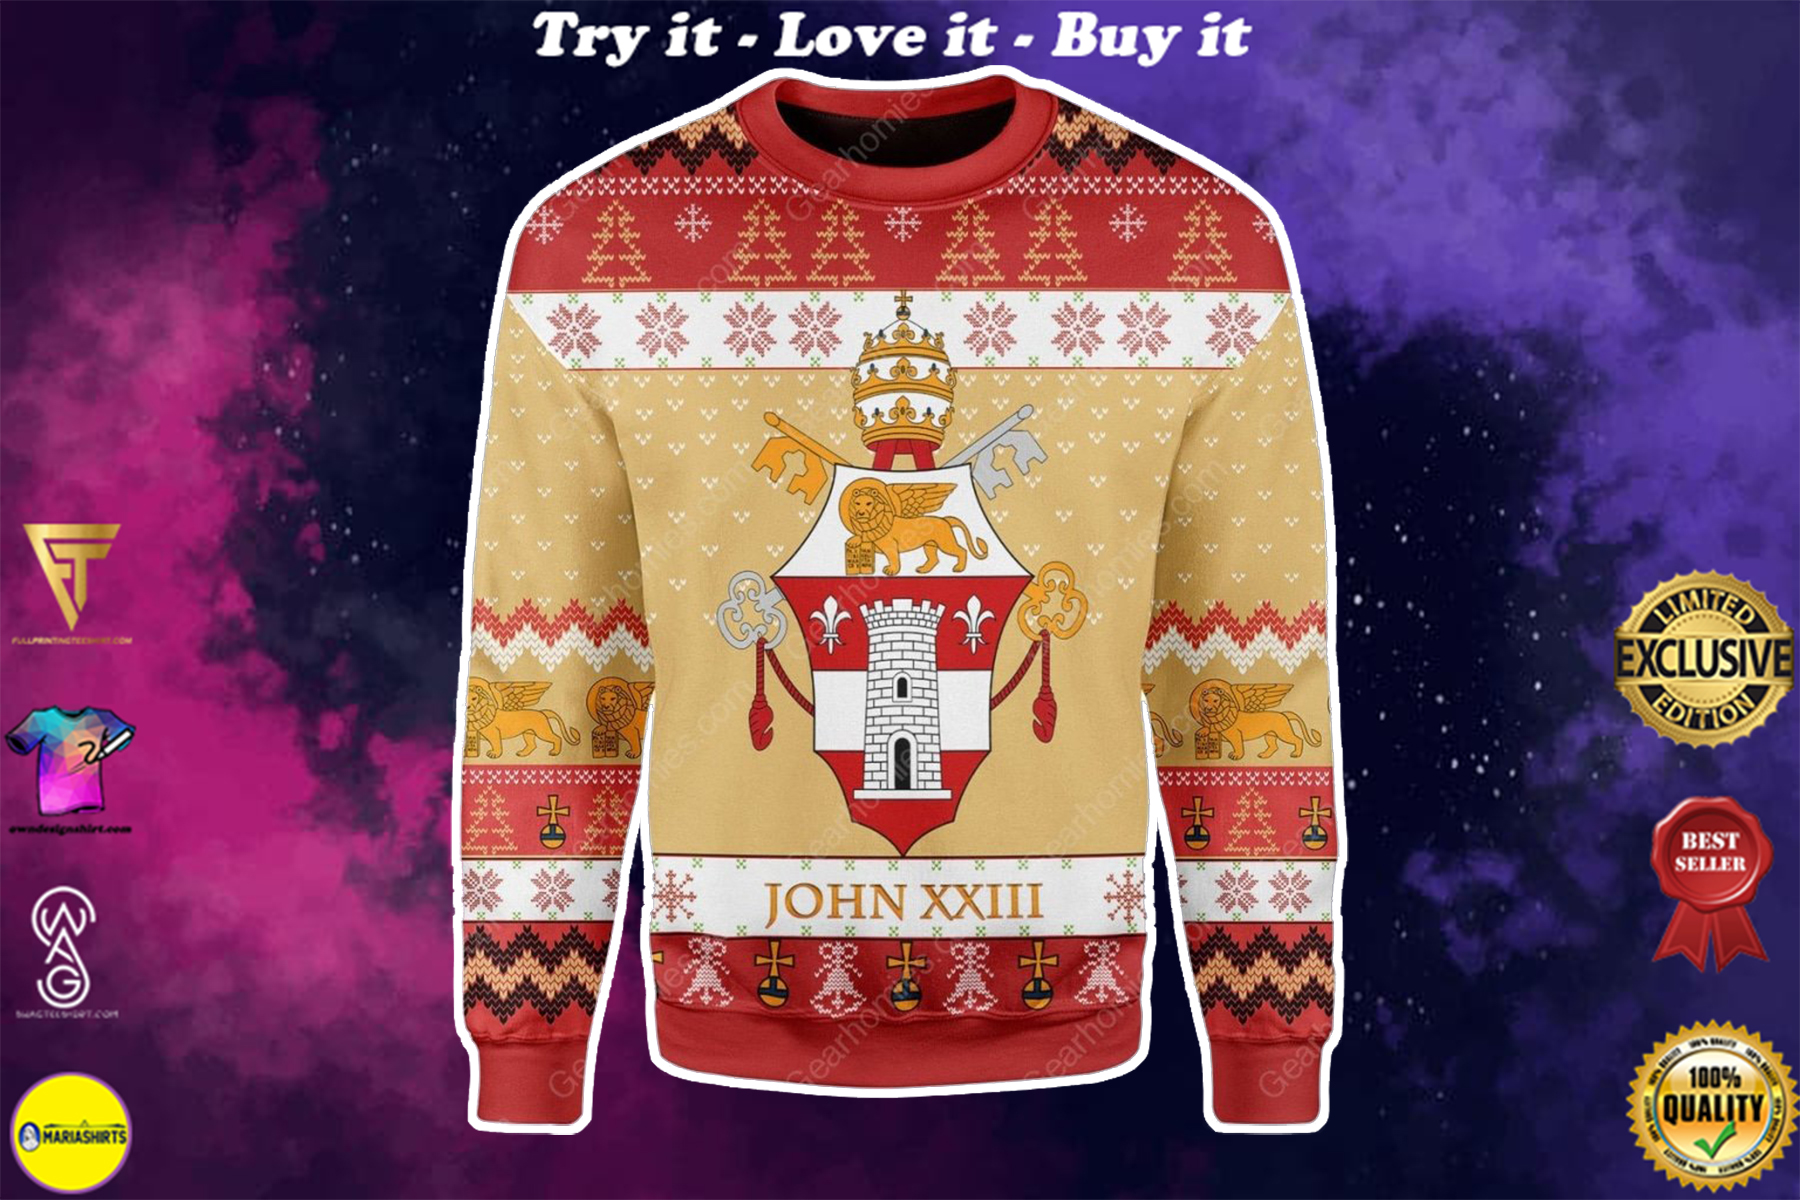 [special edition] coat of arms of pope john xxiii all over printed ugly christmas sweater - maria